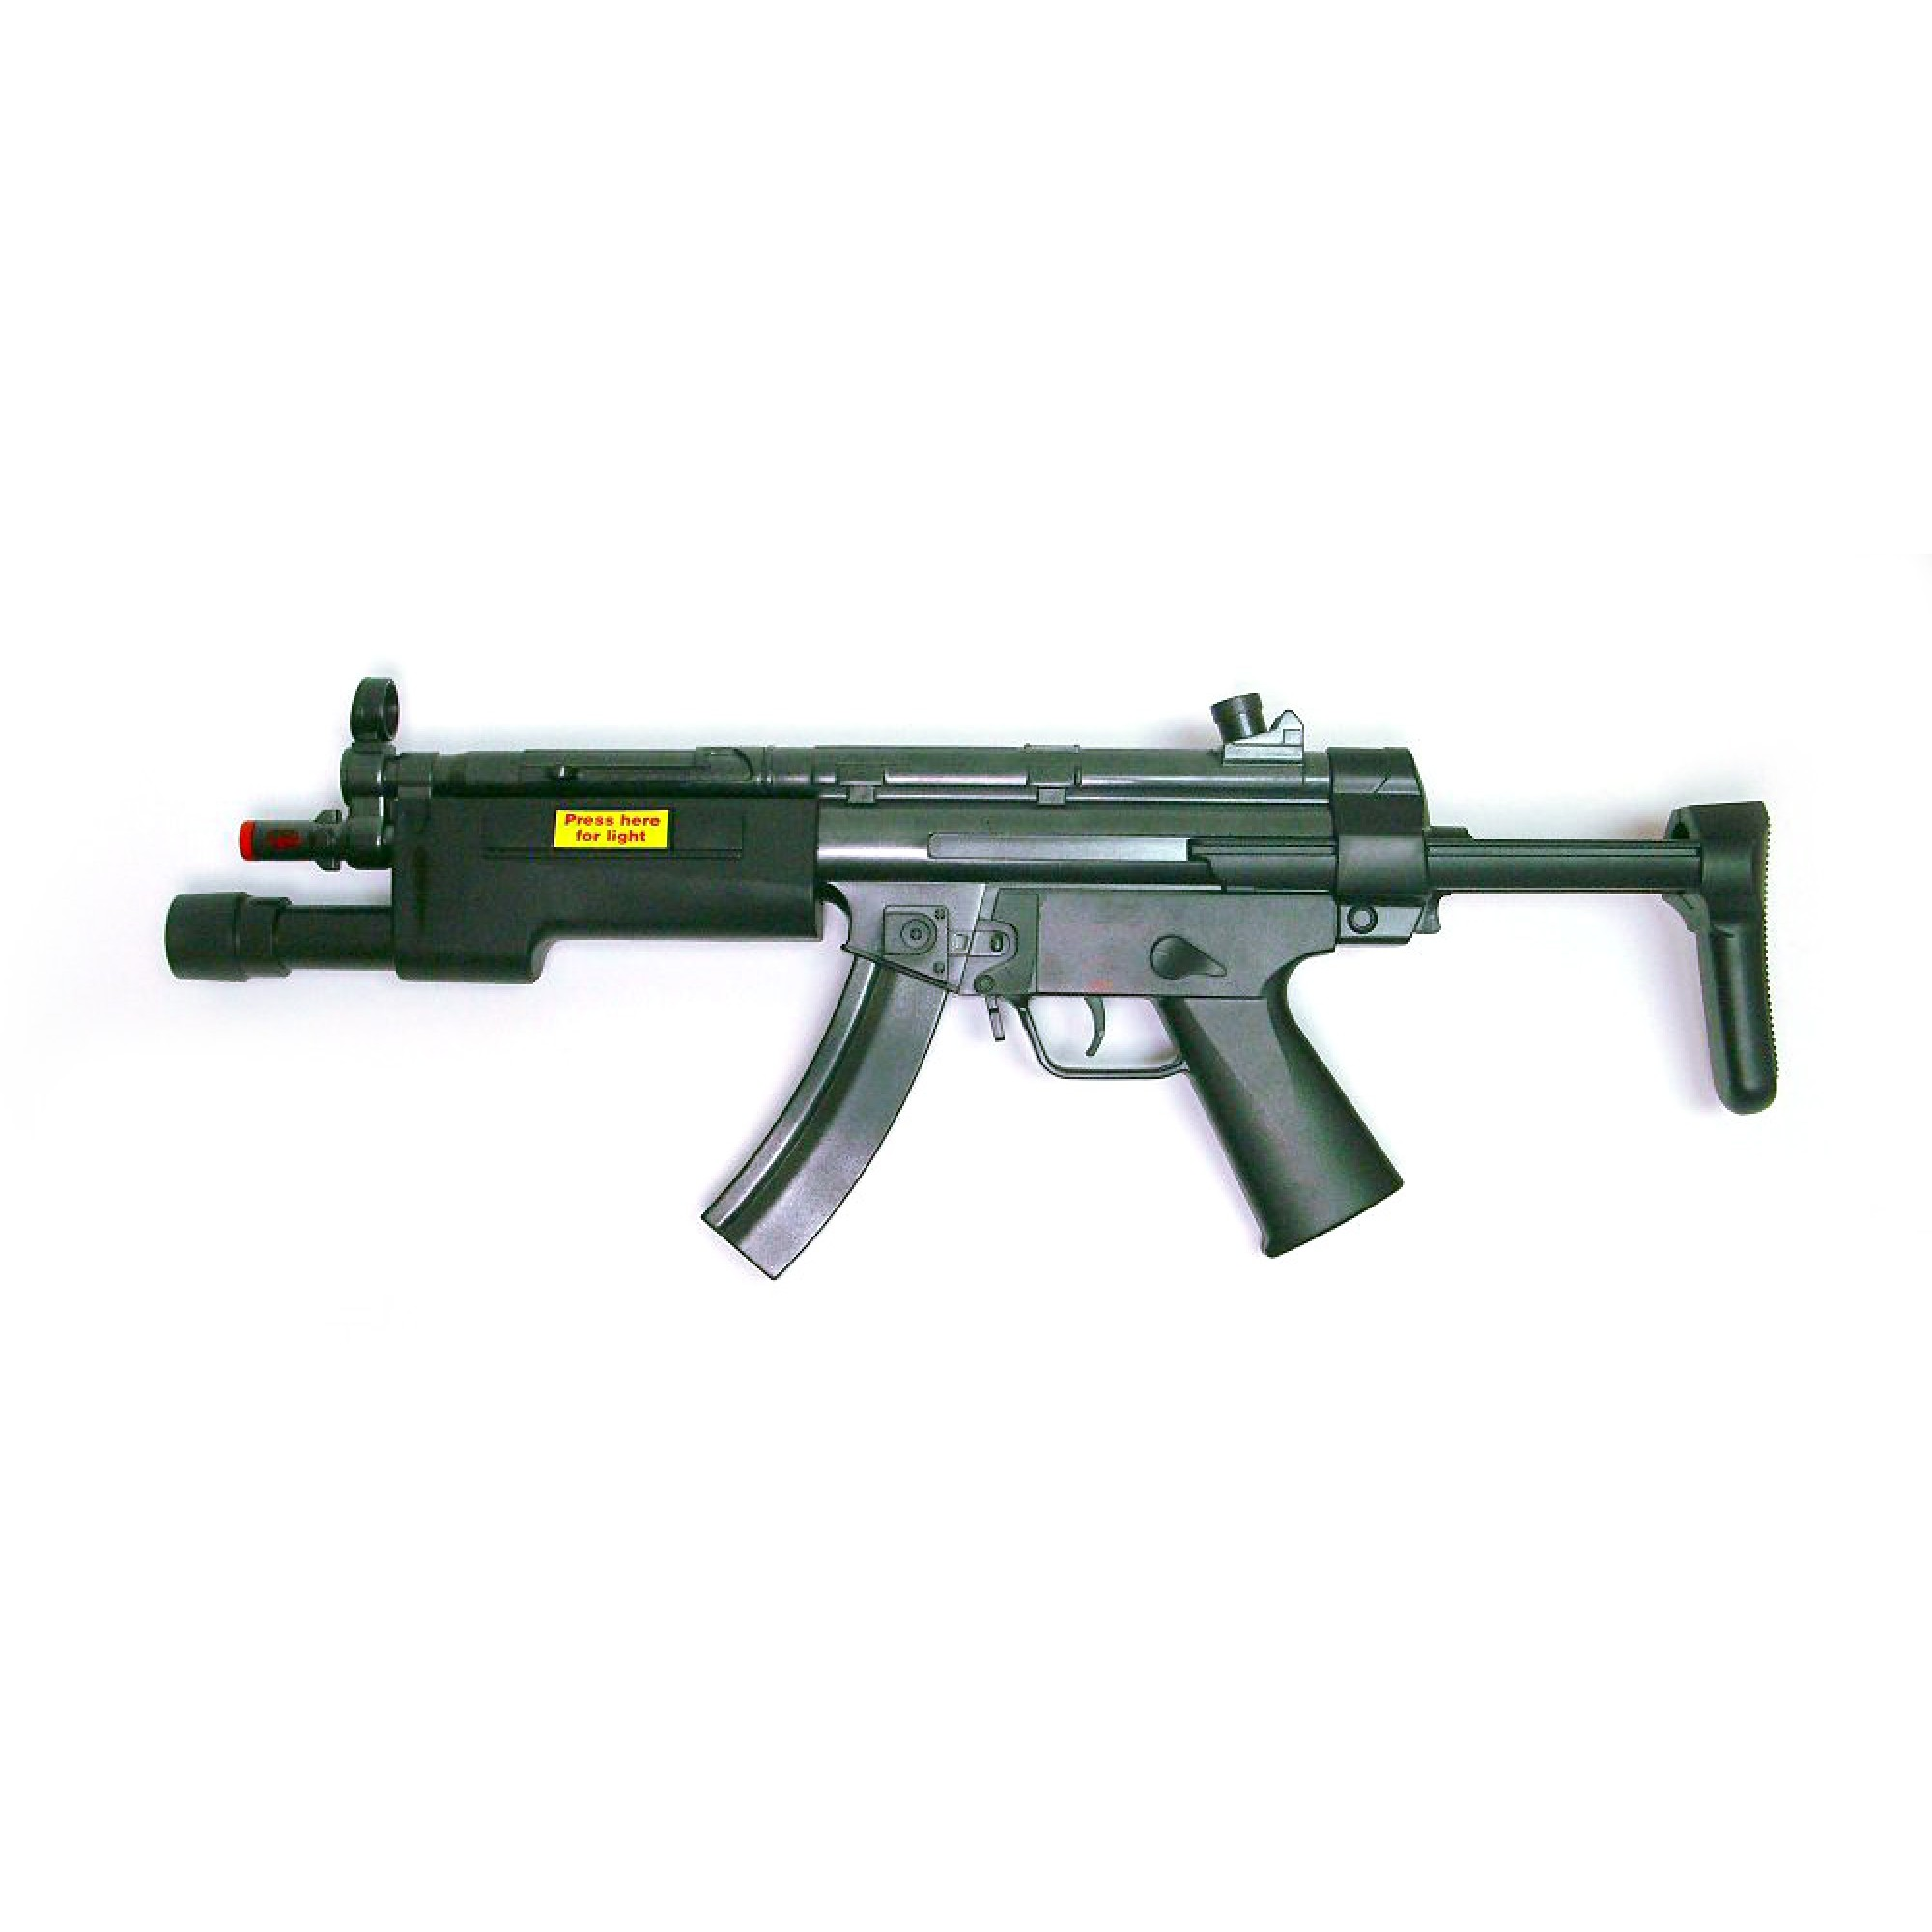 MP5 A5 W/Light, Sound & Vibration